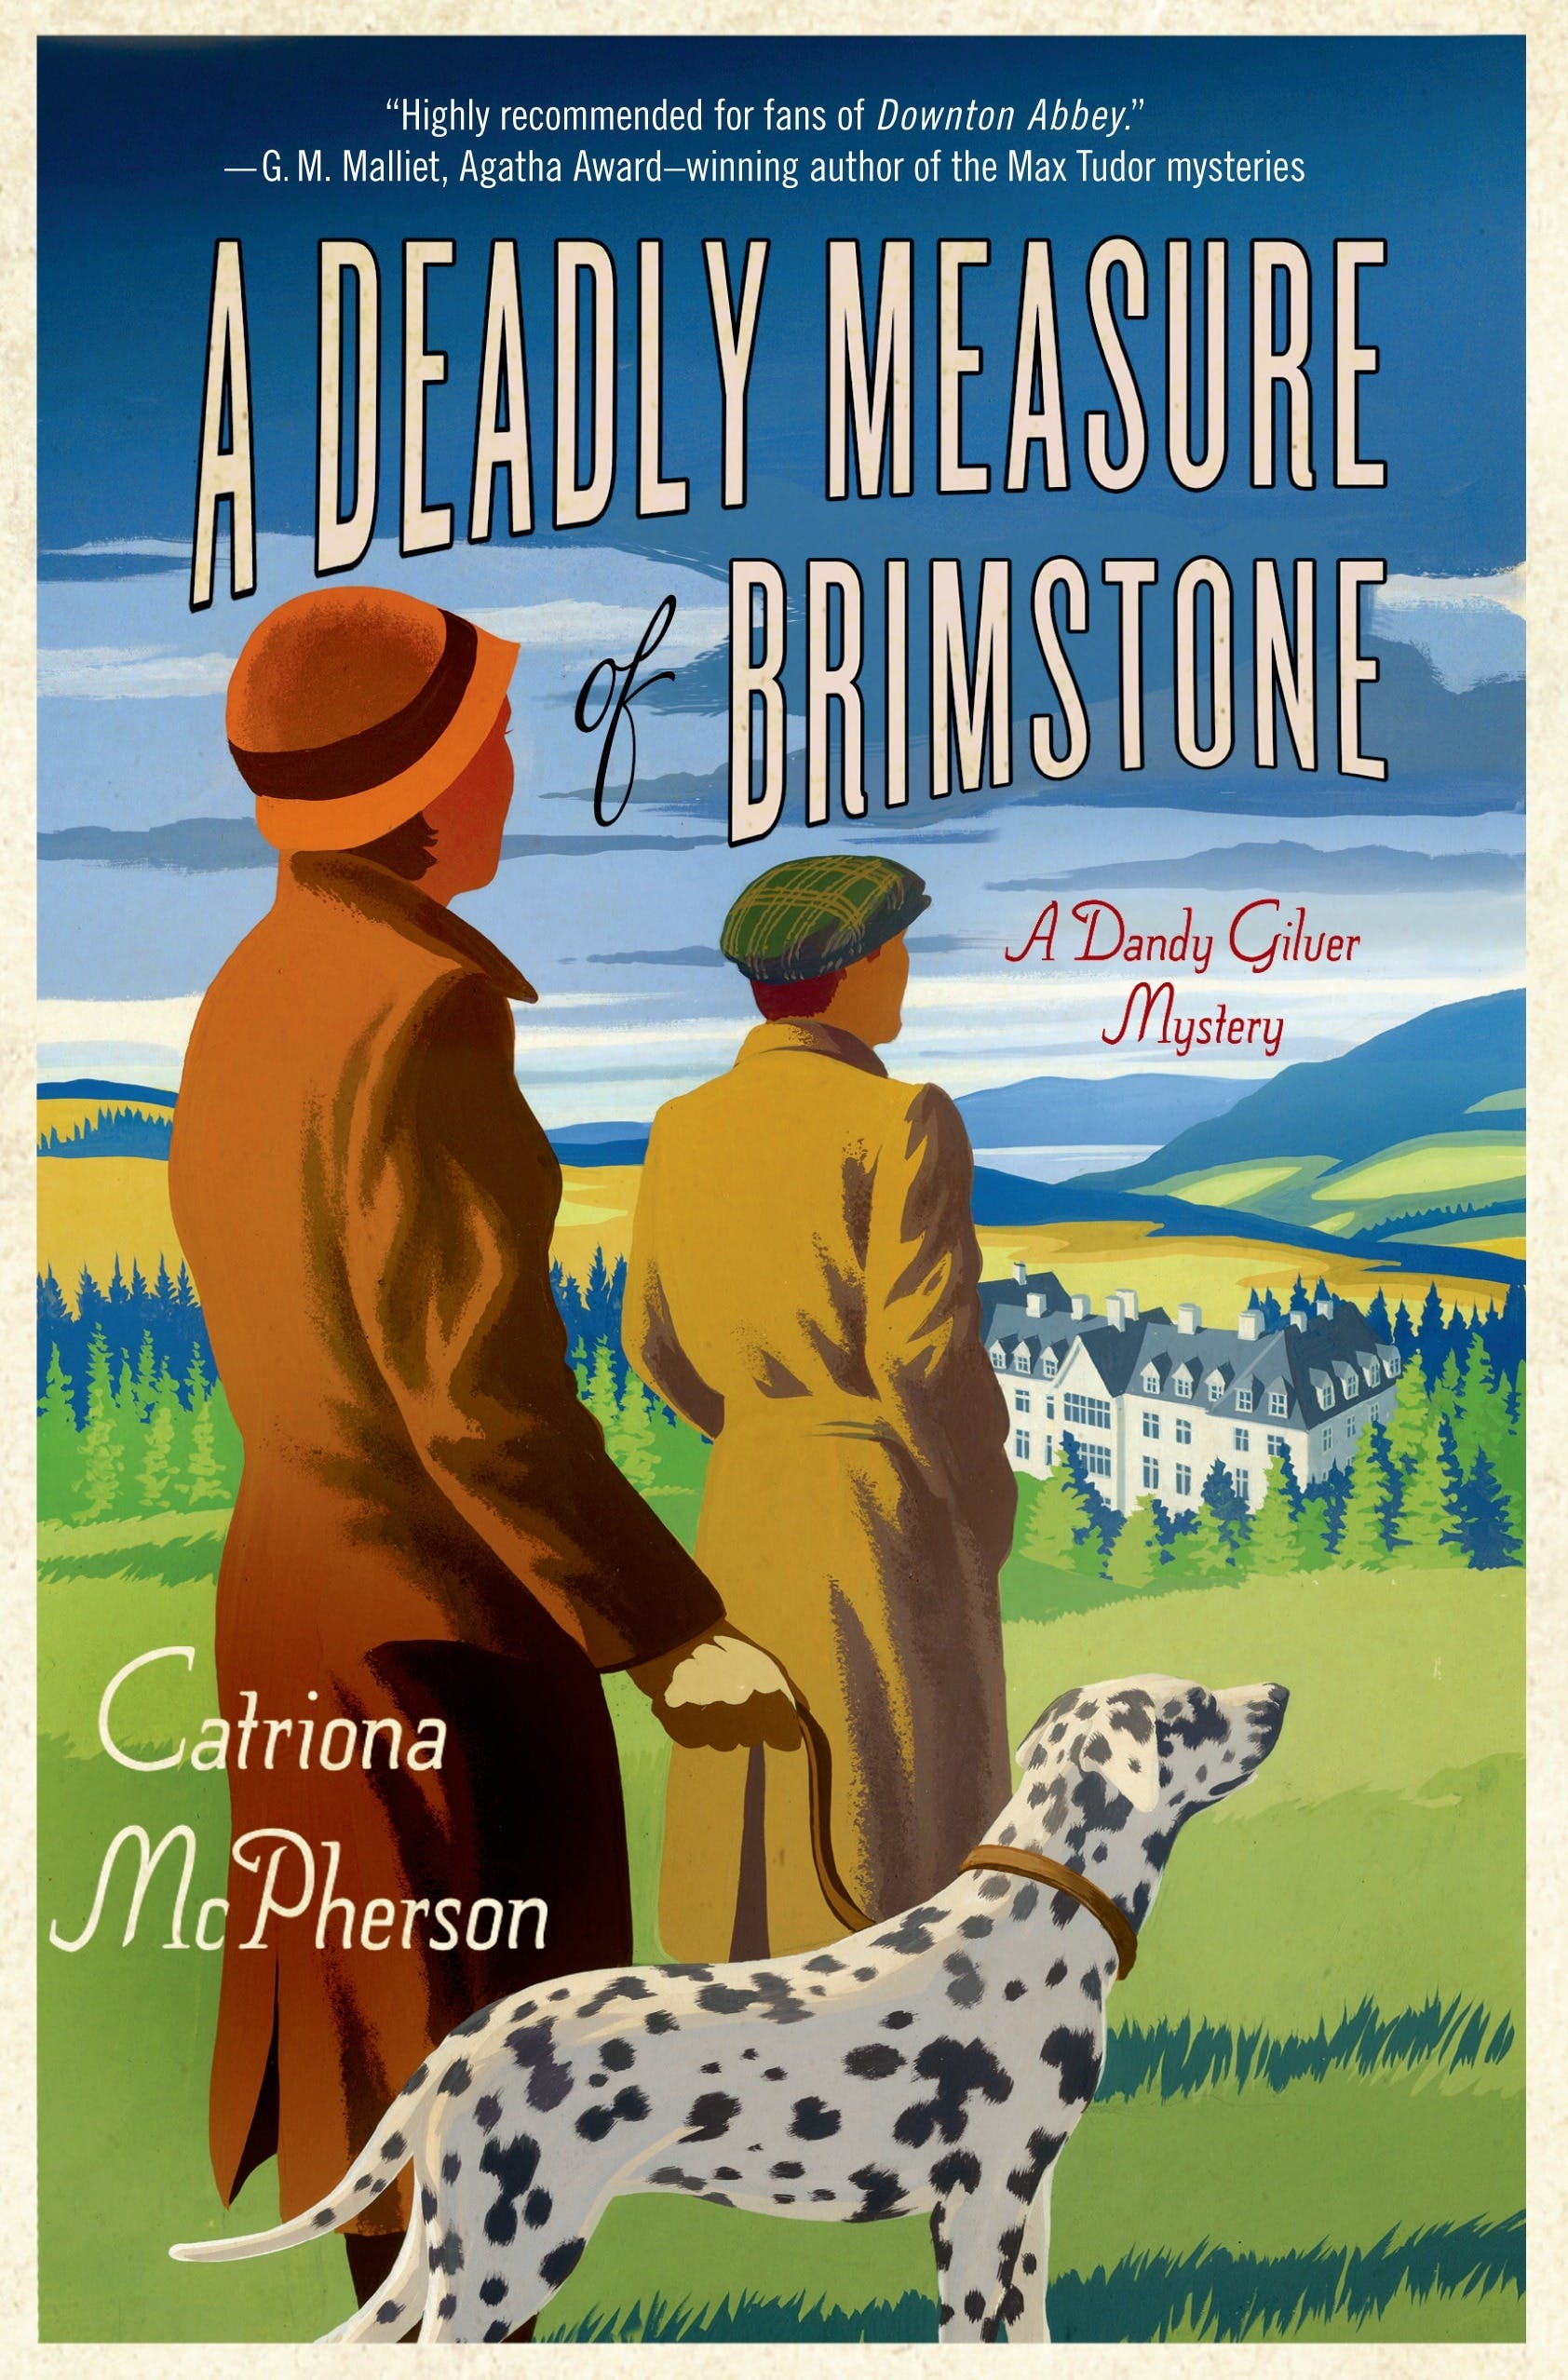 Image of A Deadly Measure of Brimstone